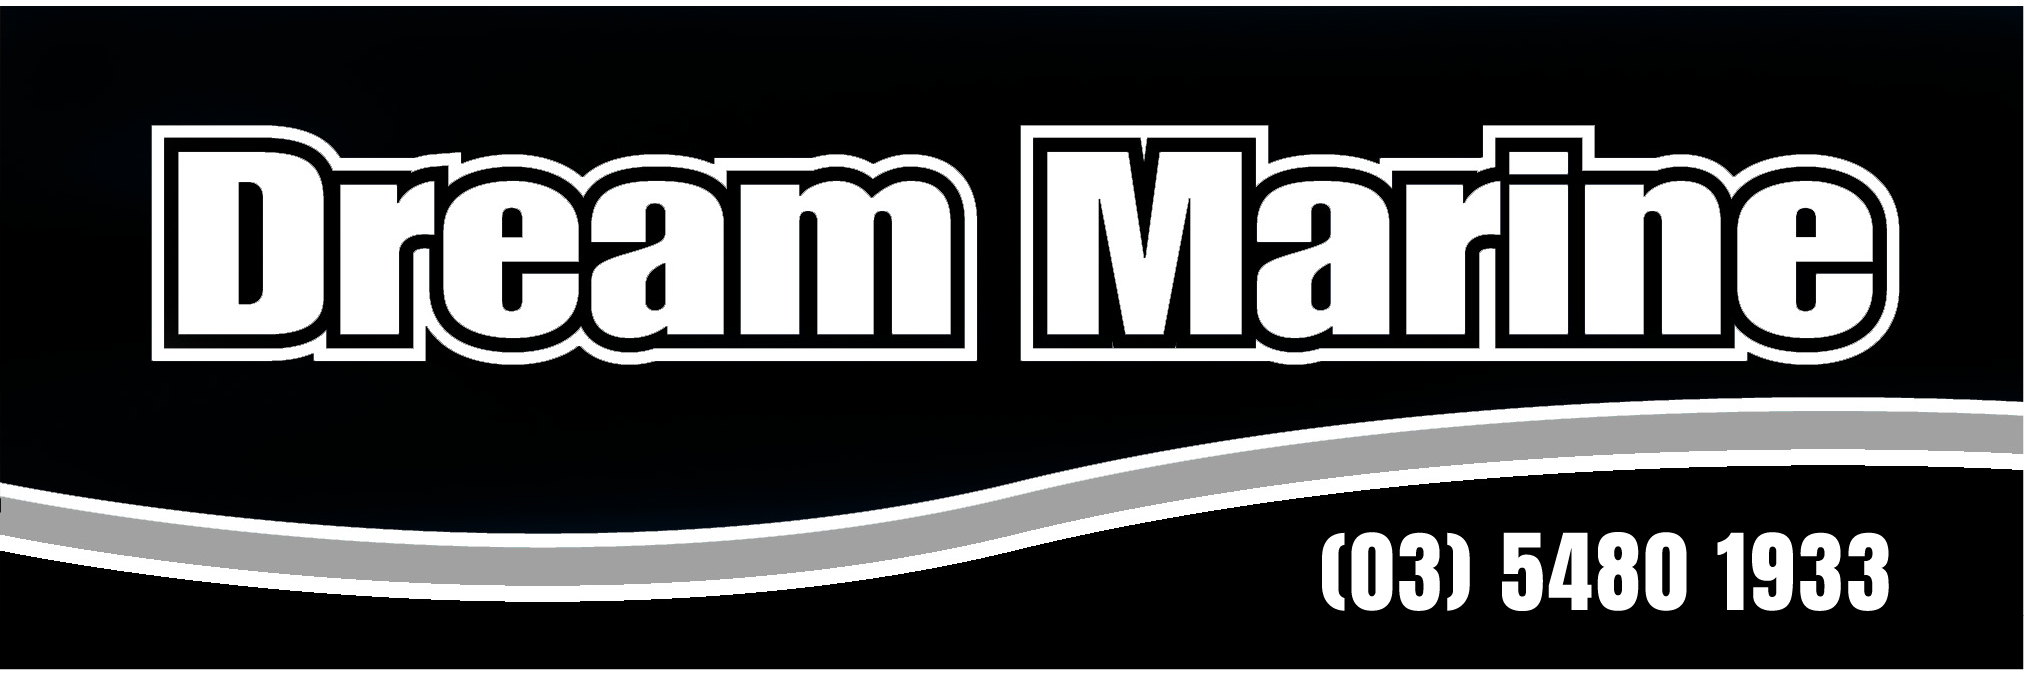 DREAM MARINE logo_swoosh PHONE